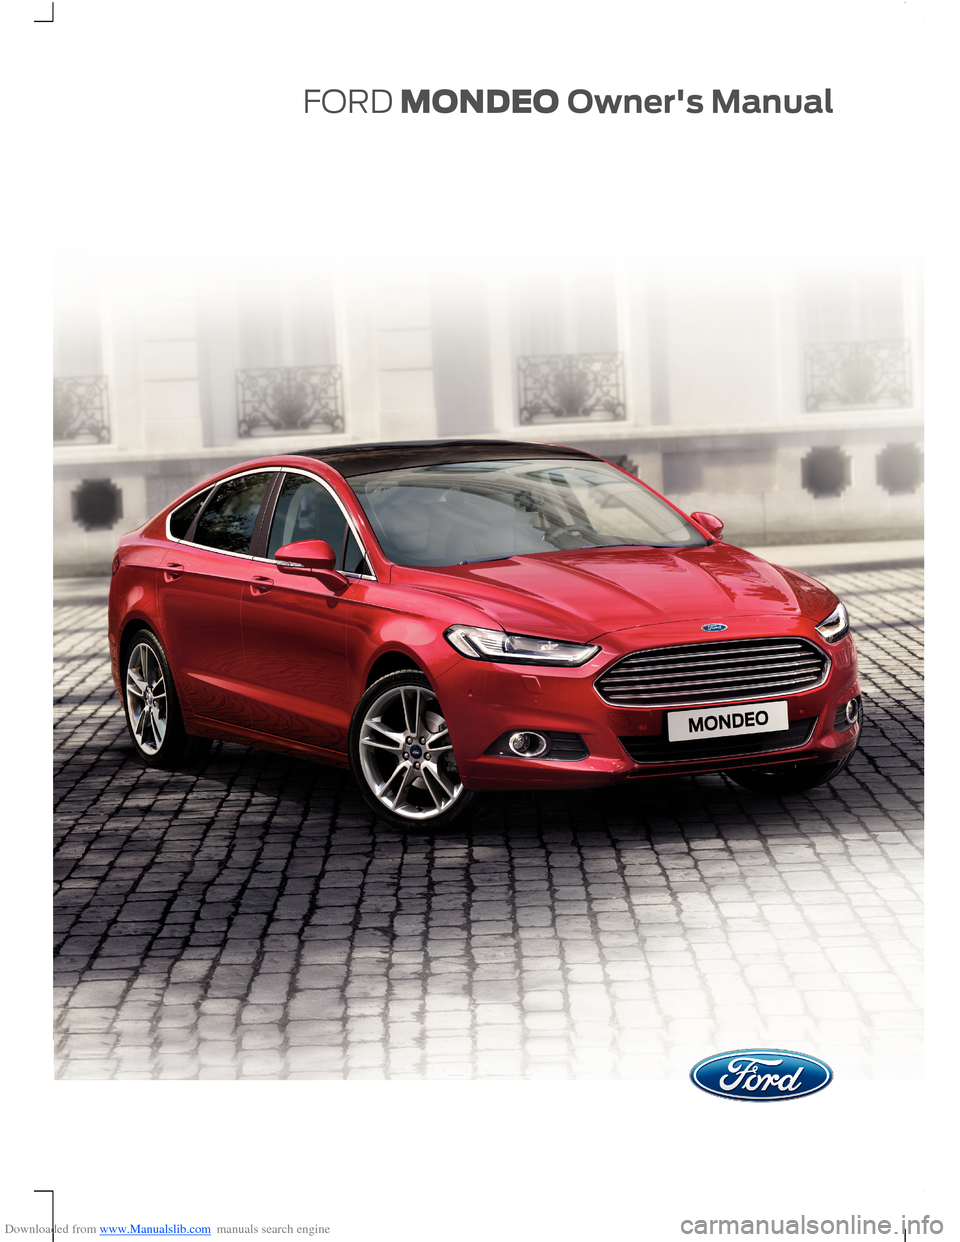 Ford Mondeo 2014 4 G Owners Manual border=